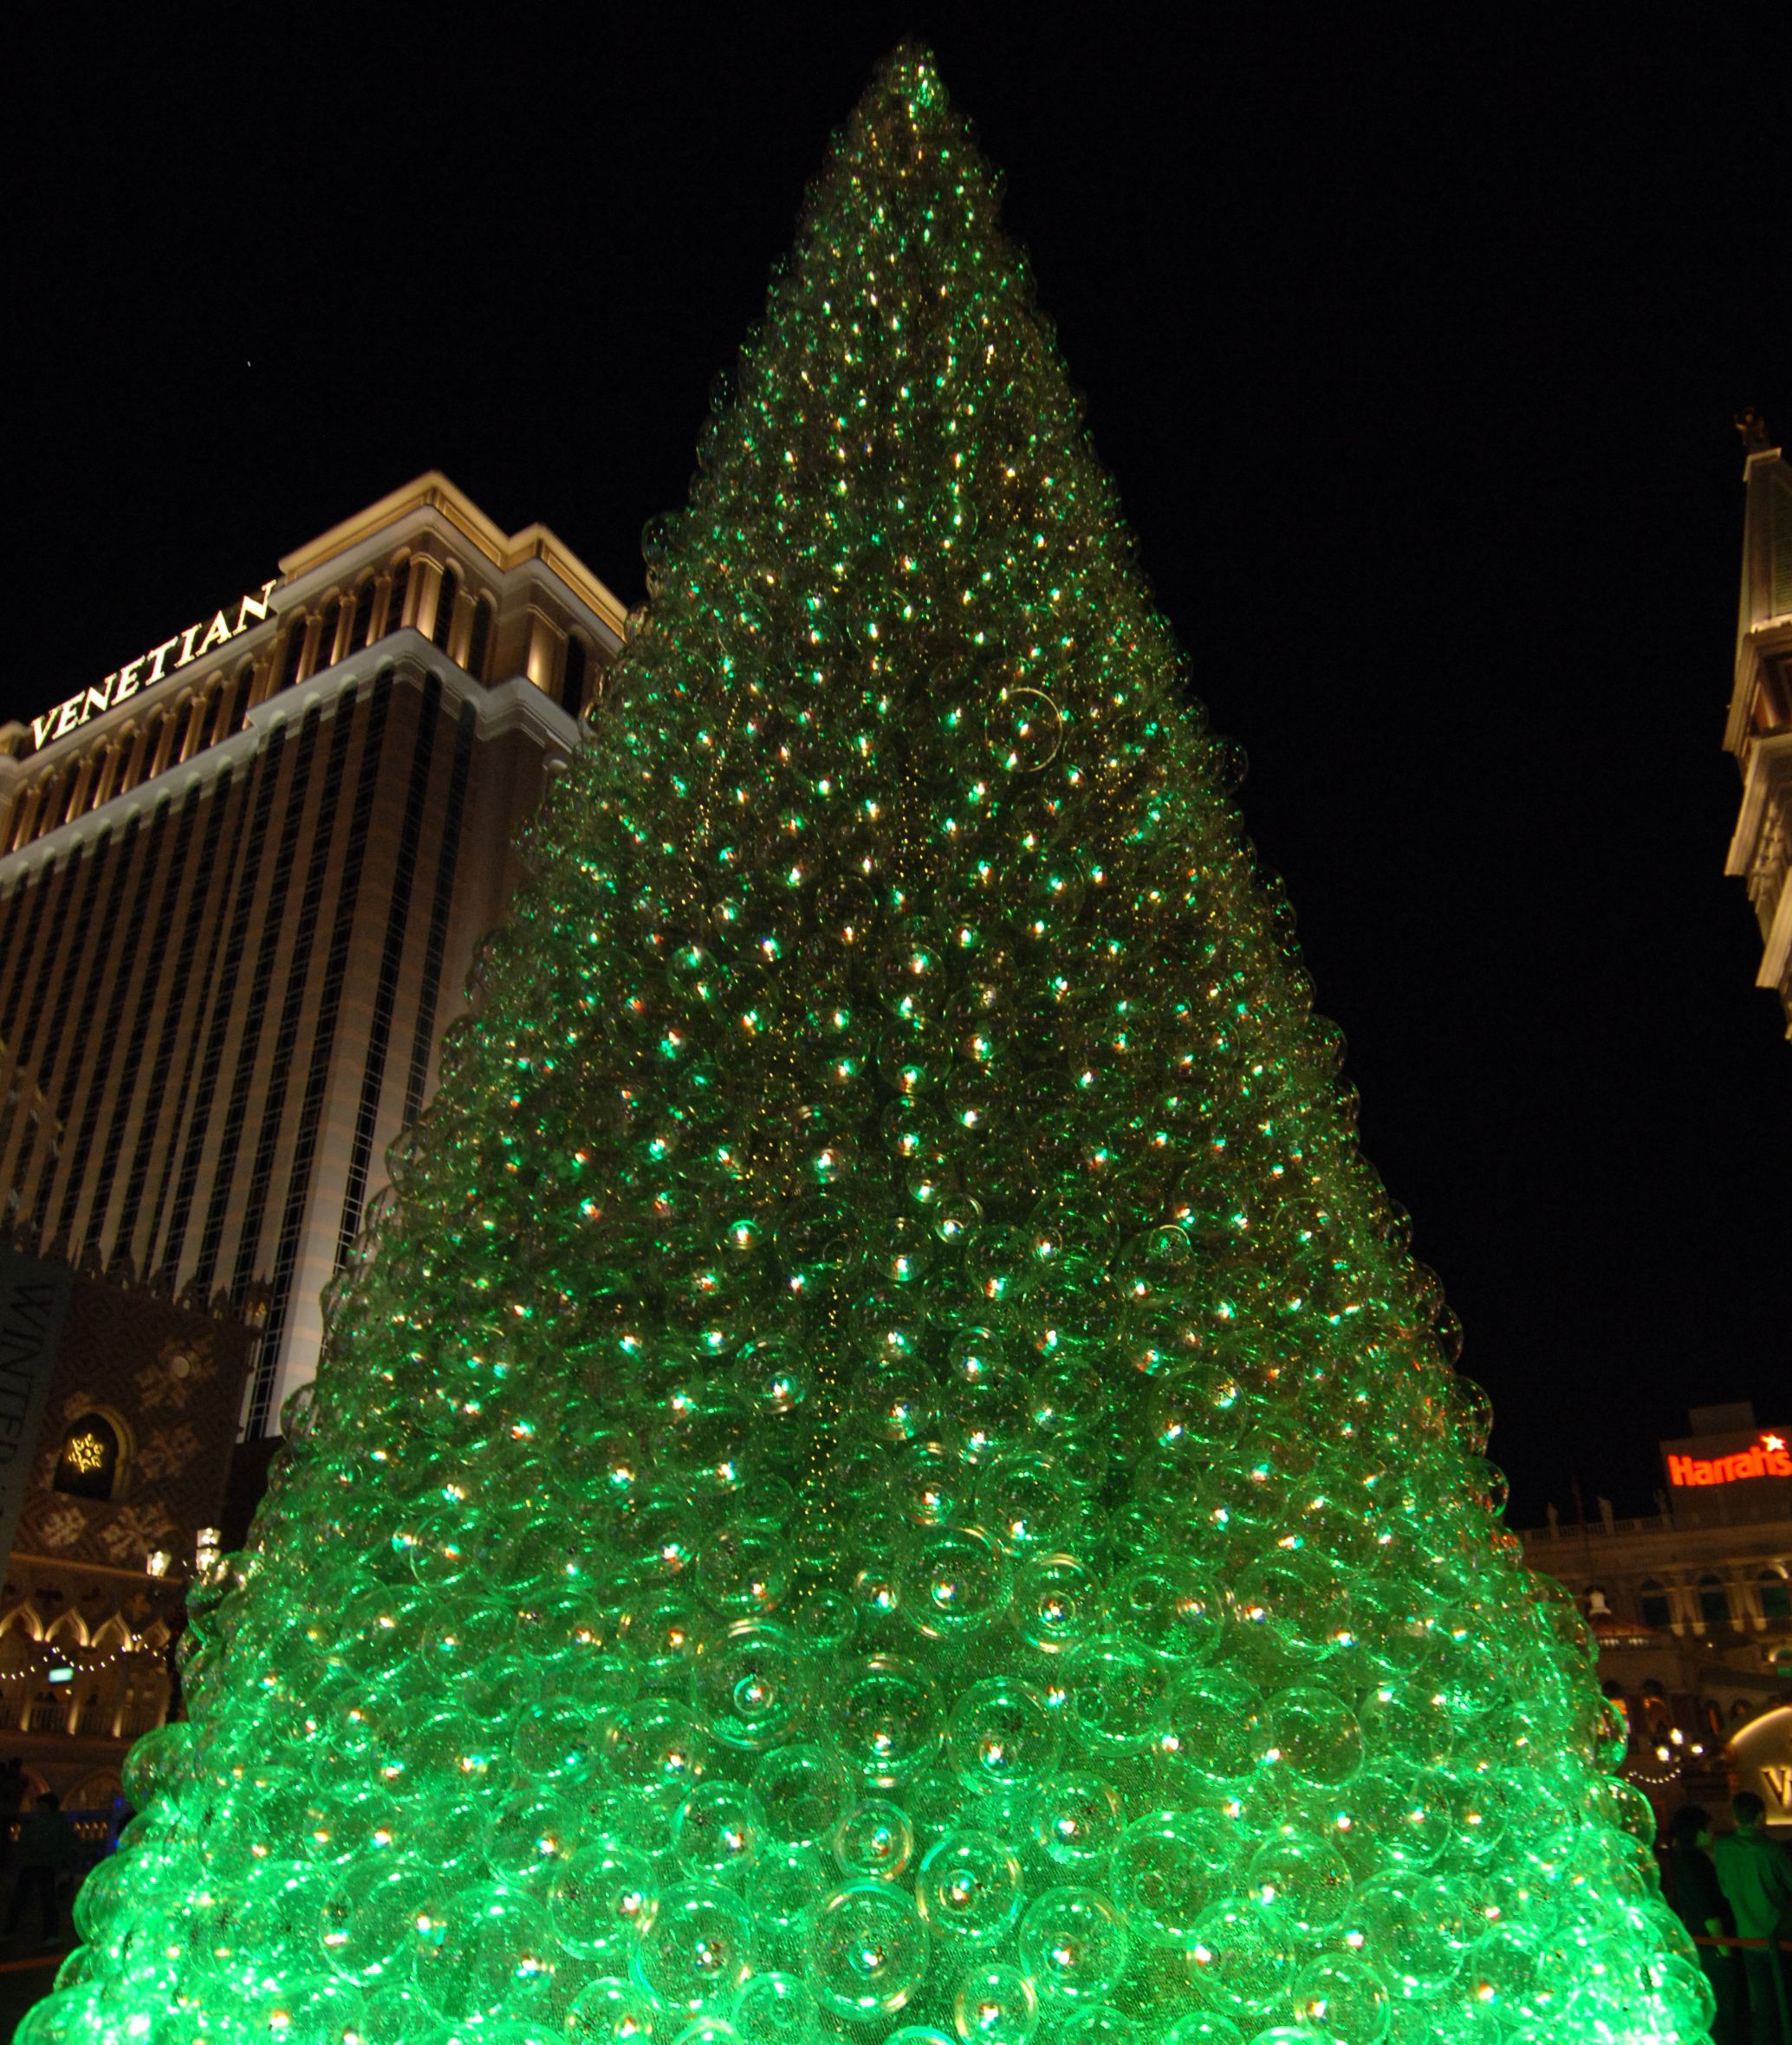 Spending Christmas In Las Vegas: Weather, Decorations, And